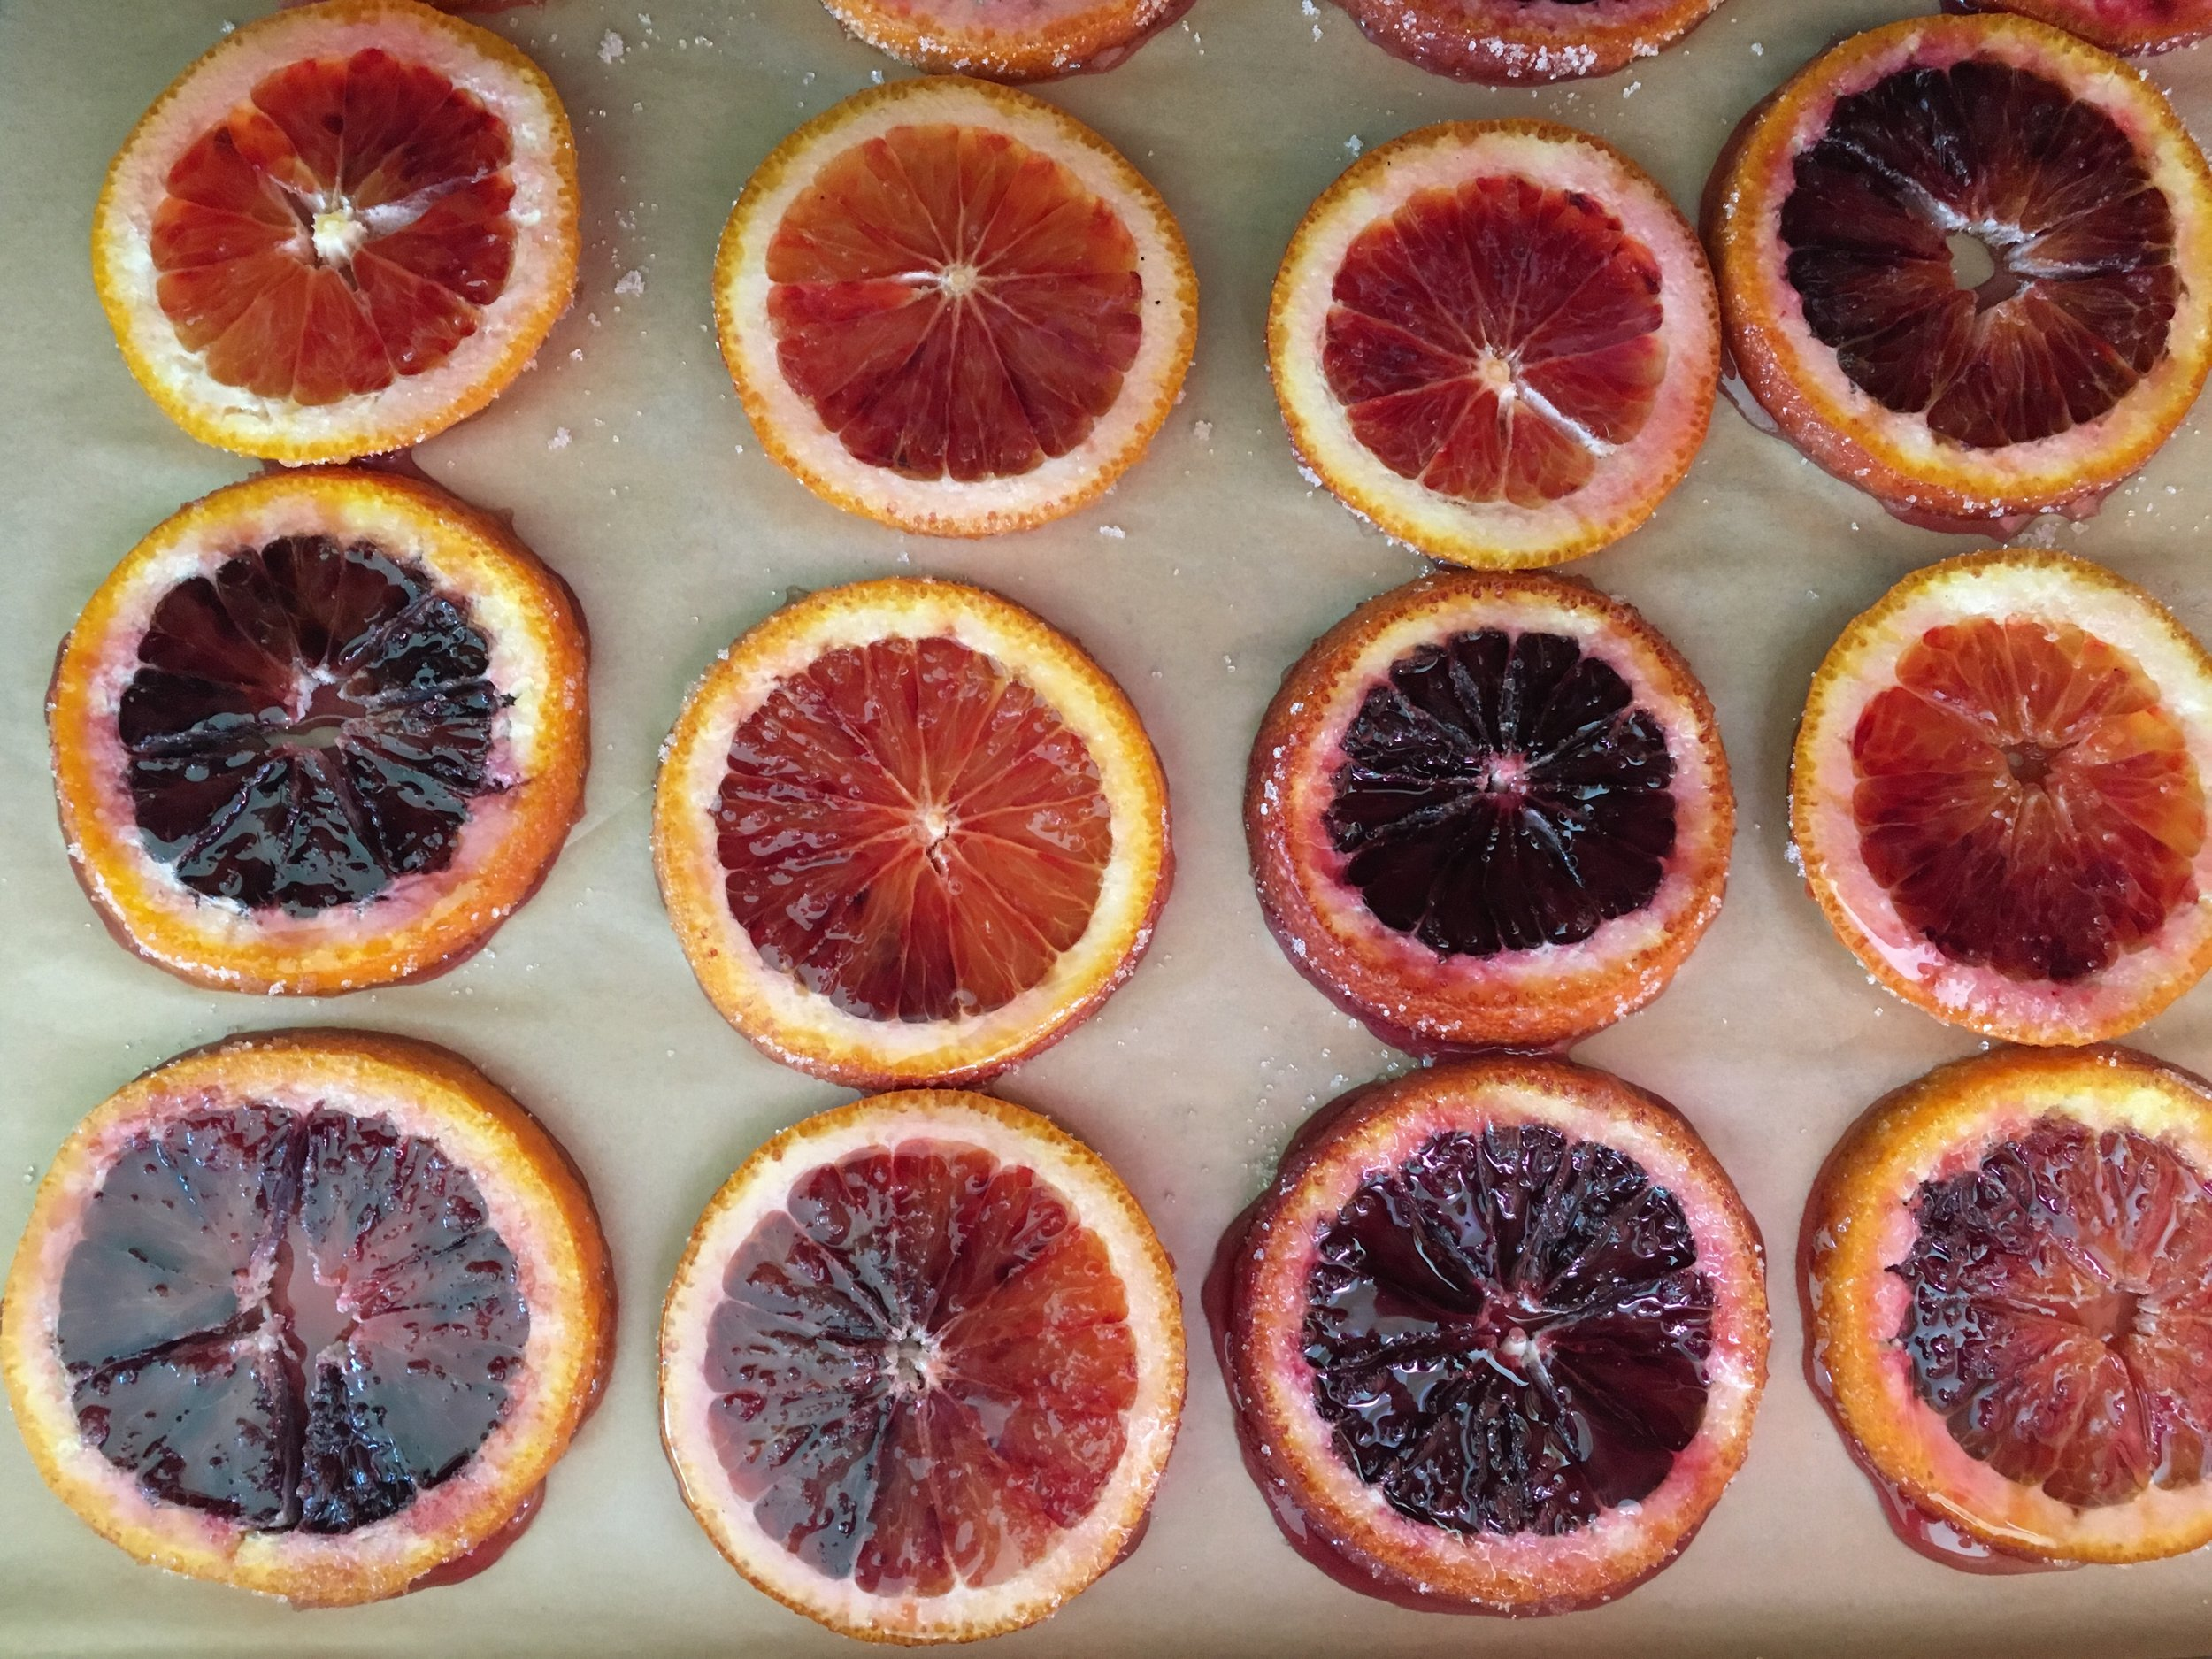 I also bought some blood oranges to dry. A gorgeous color and flowery flavor notes.